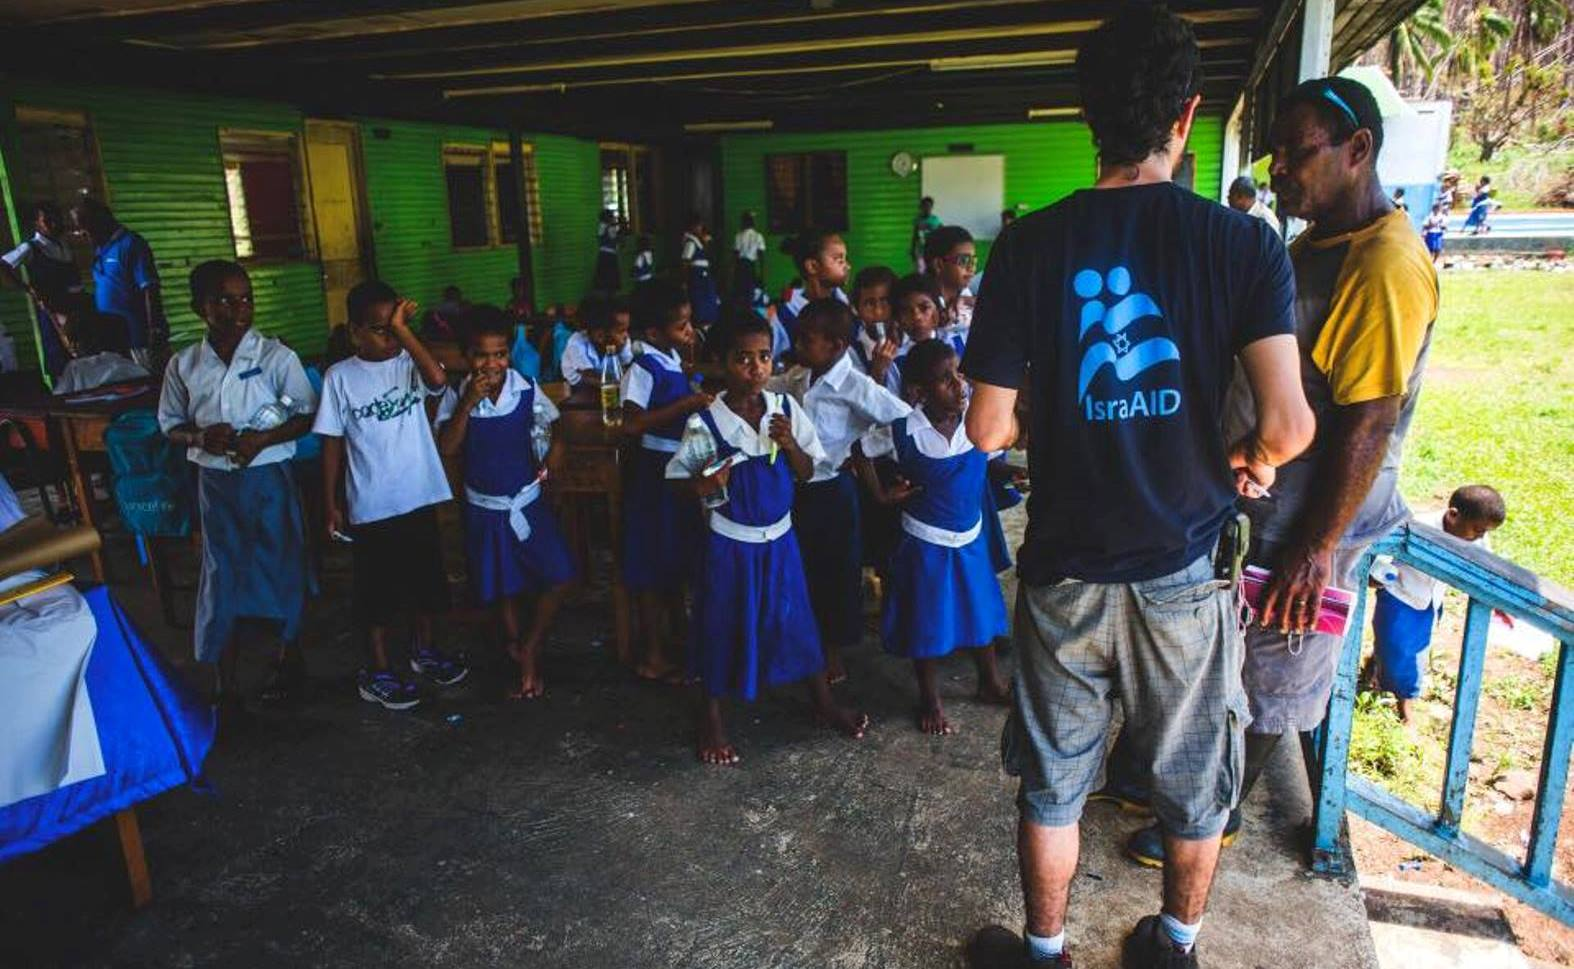 An IsraAID volunteer working with schoolchildren in Fiji.